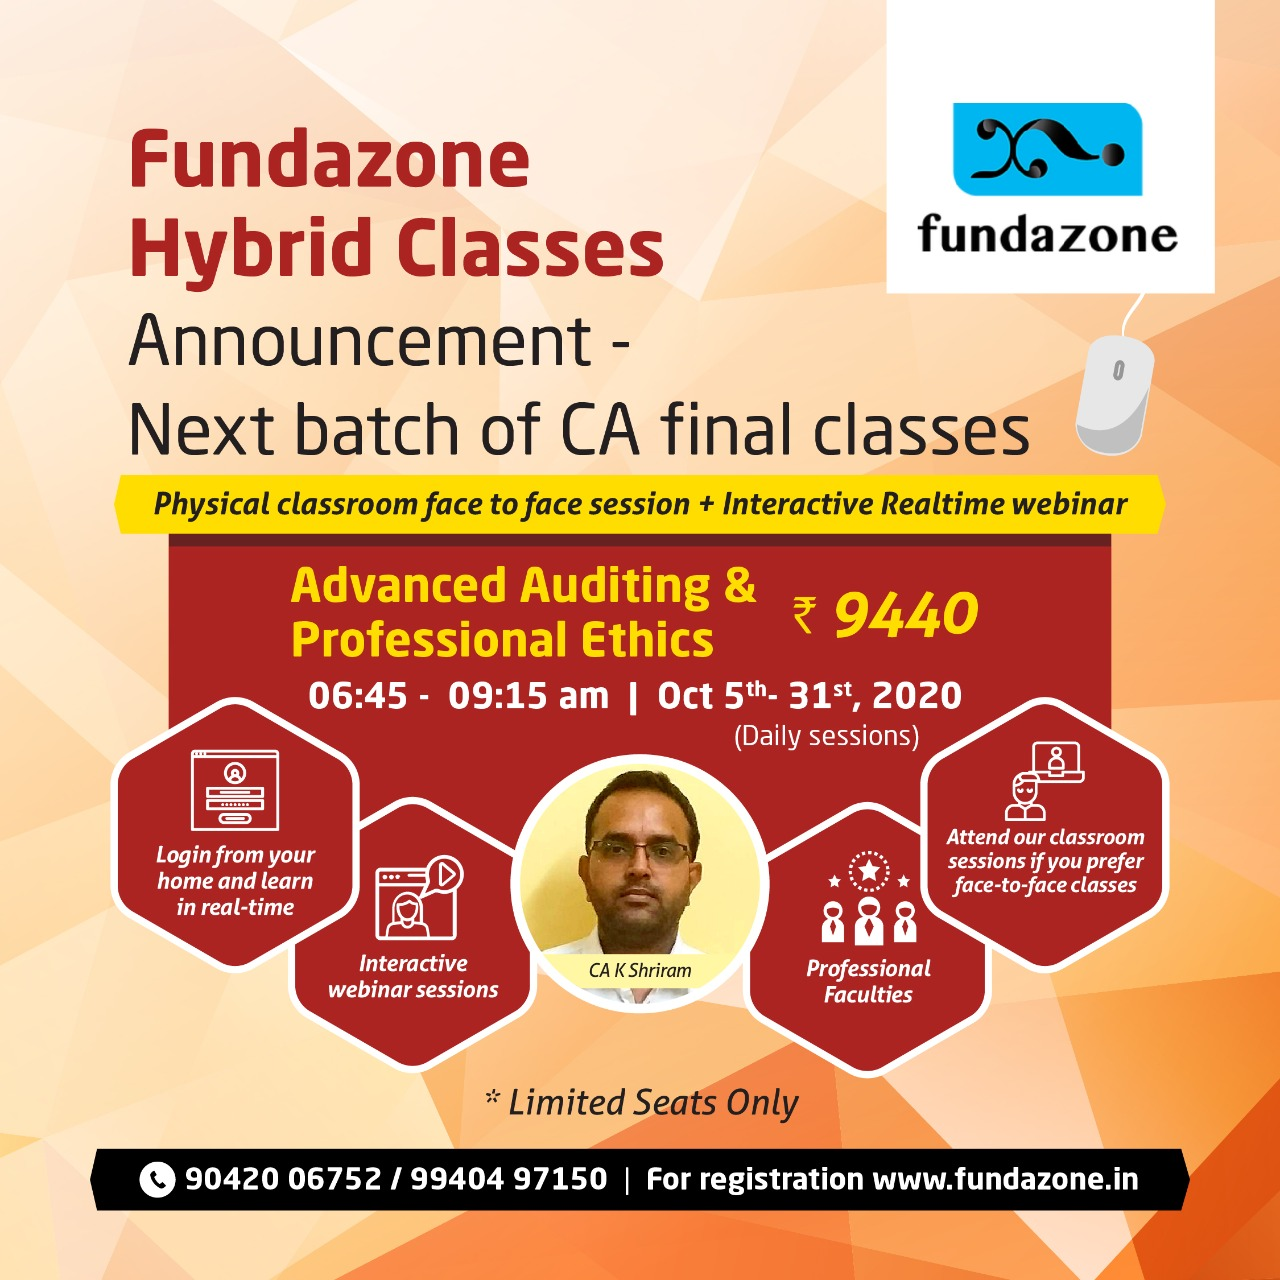 advanced auditing and professional ethics CA final classes